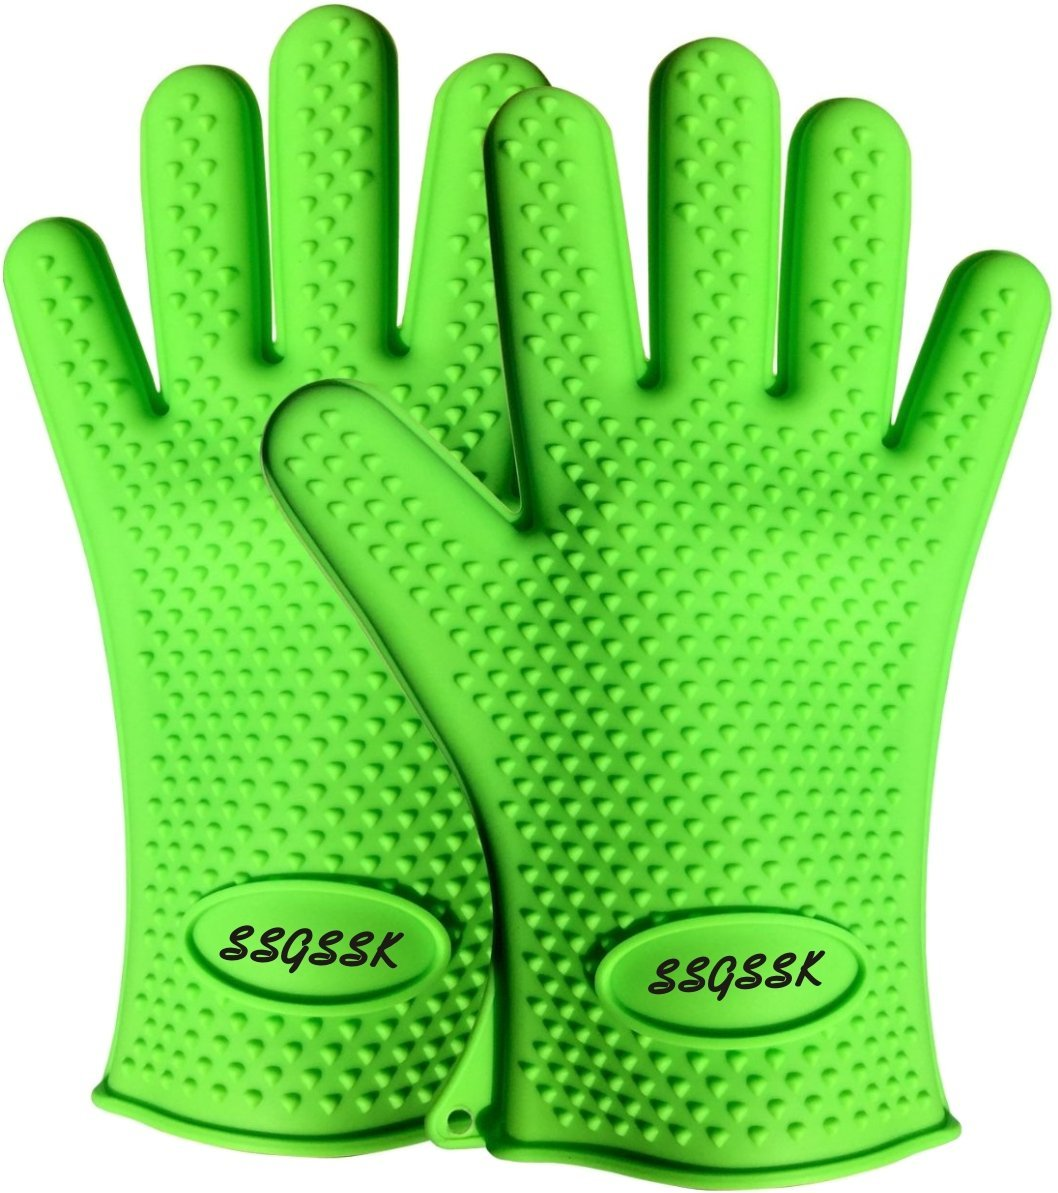 SSGSSK Safety gloves set Gray color 1pair cut resistant gloves/& Green color 1pair heat resistant bbq silicone gloves GREEN + GRAY